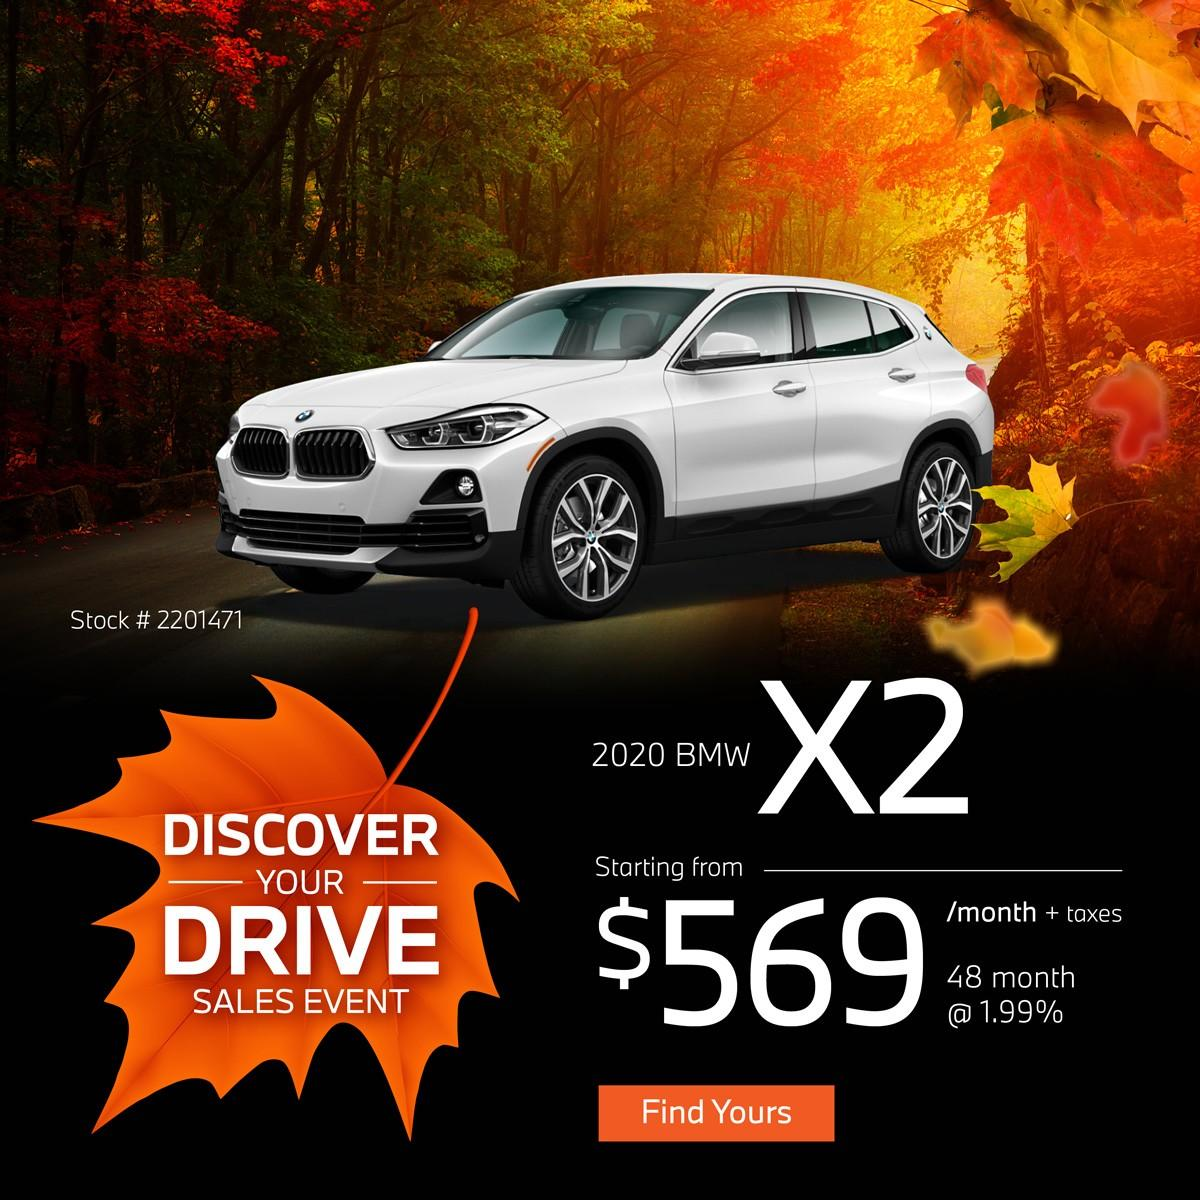 Discover Your Drive Sales Event